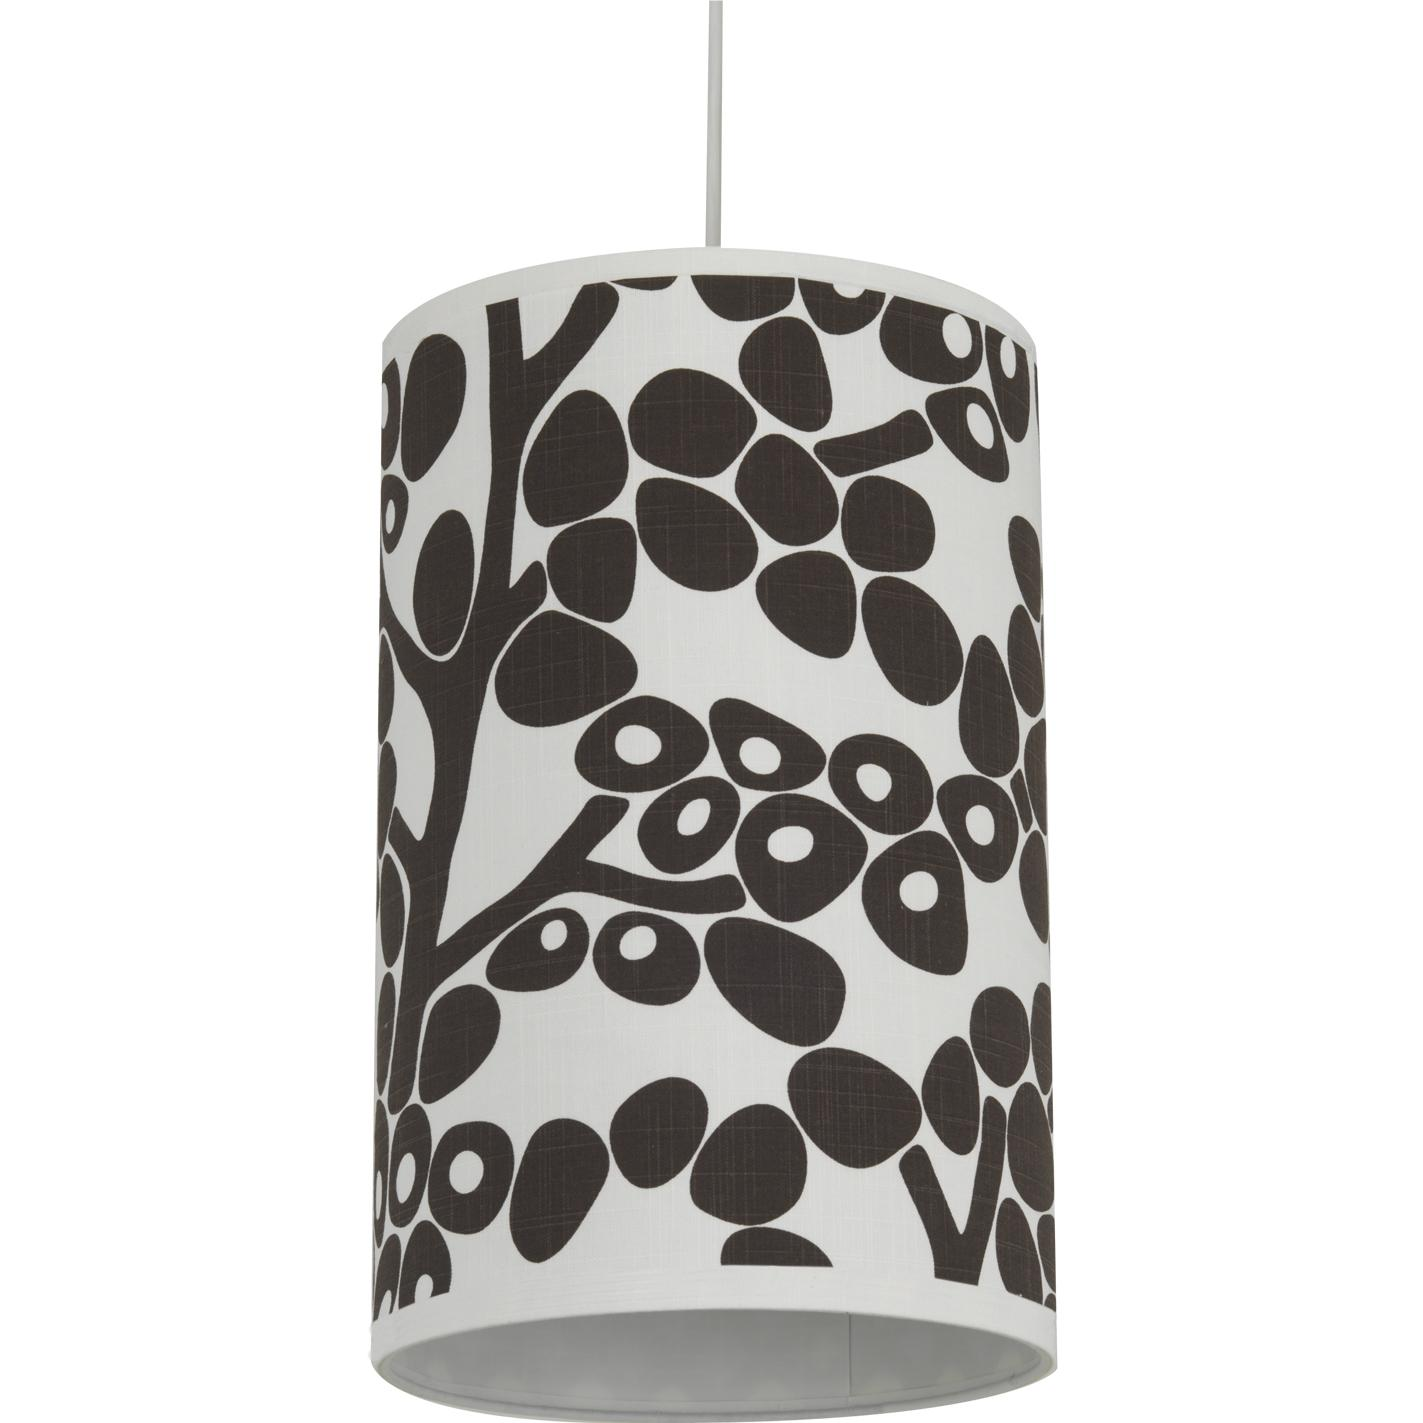 Oilo Cylinder Hanging Lamp - Modern Berries Brown